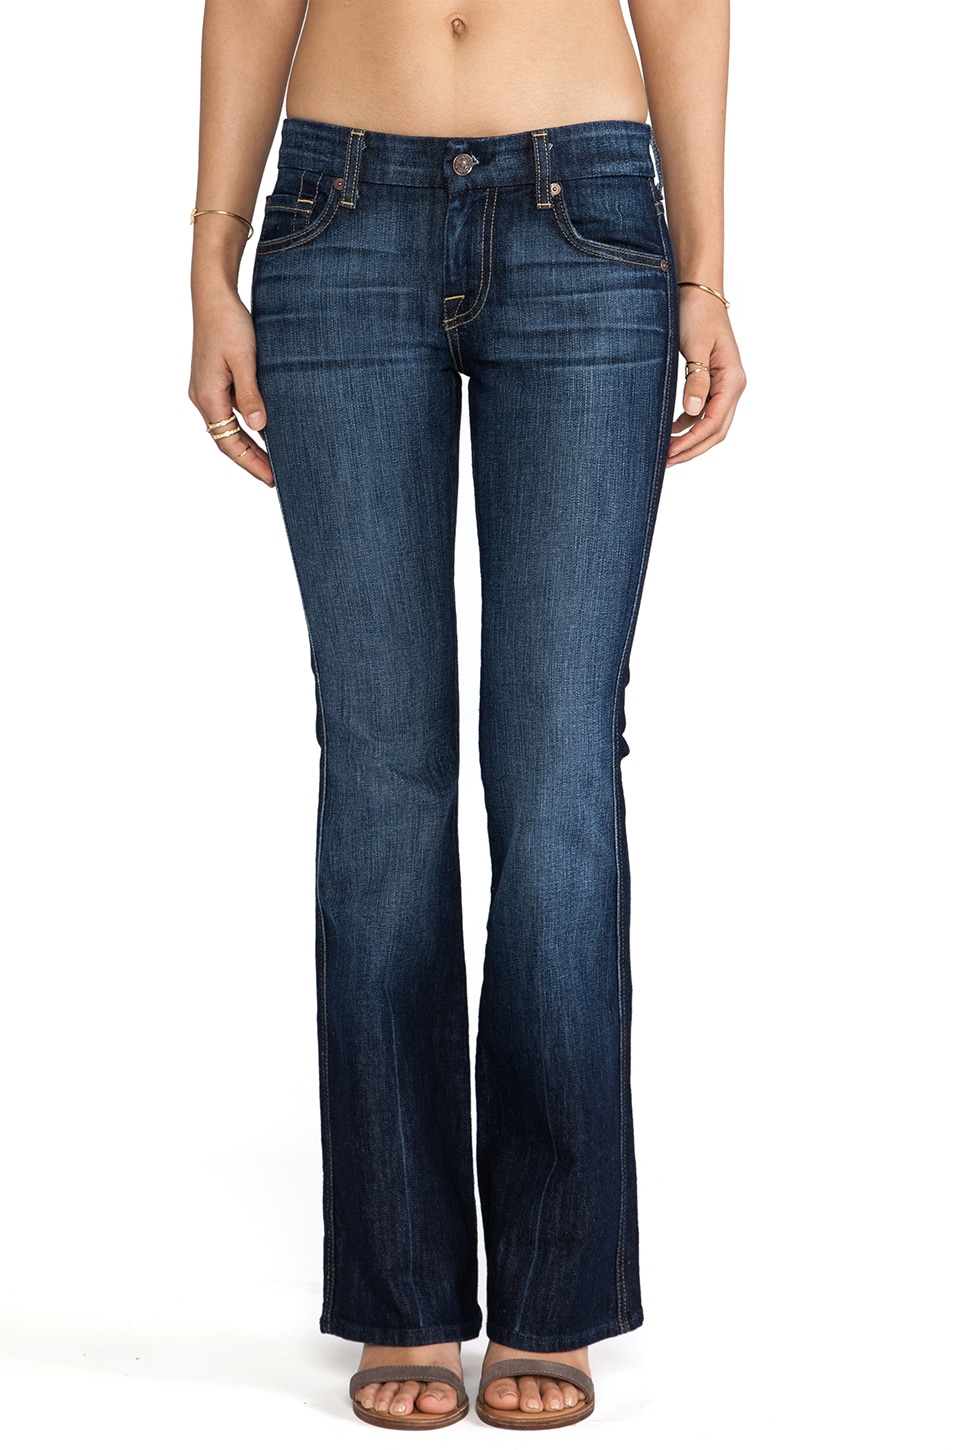 7 For All Mankind Jean Bootcut petites poches brodées